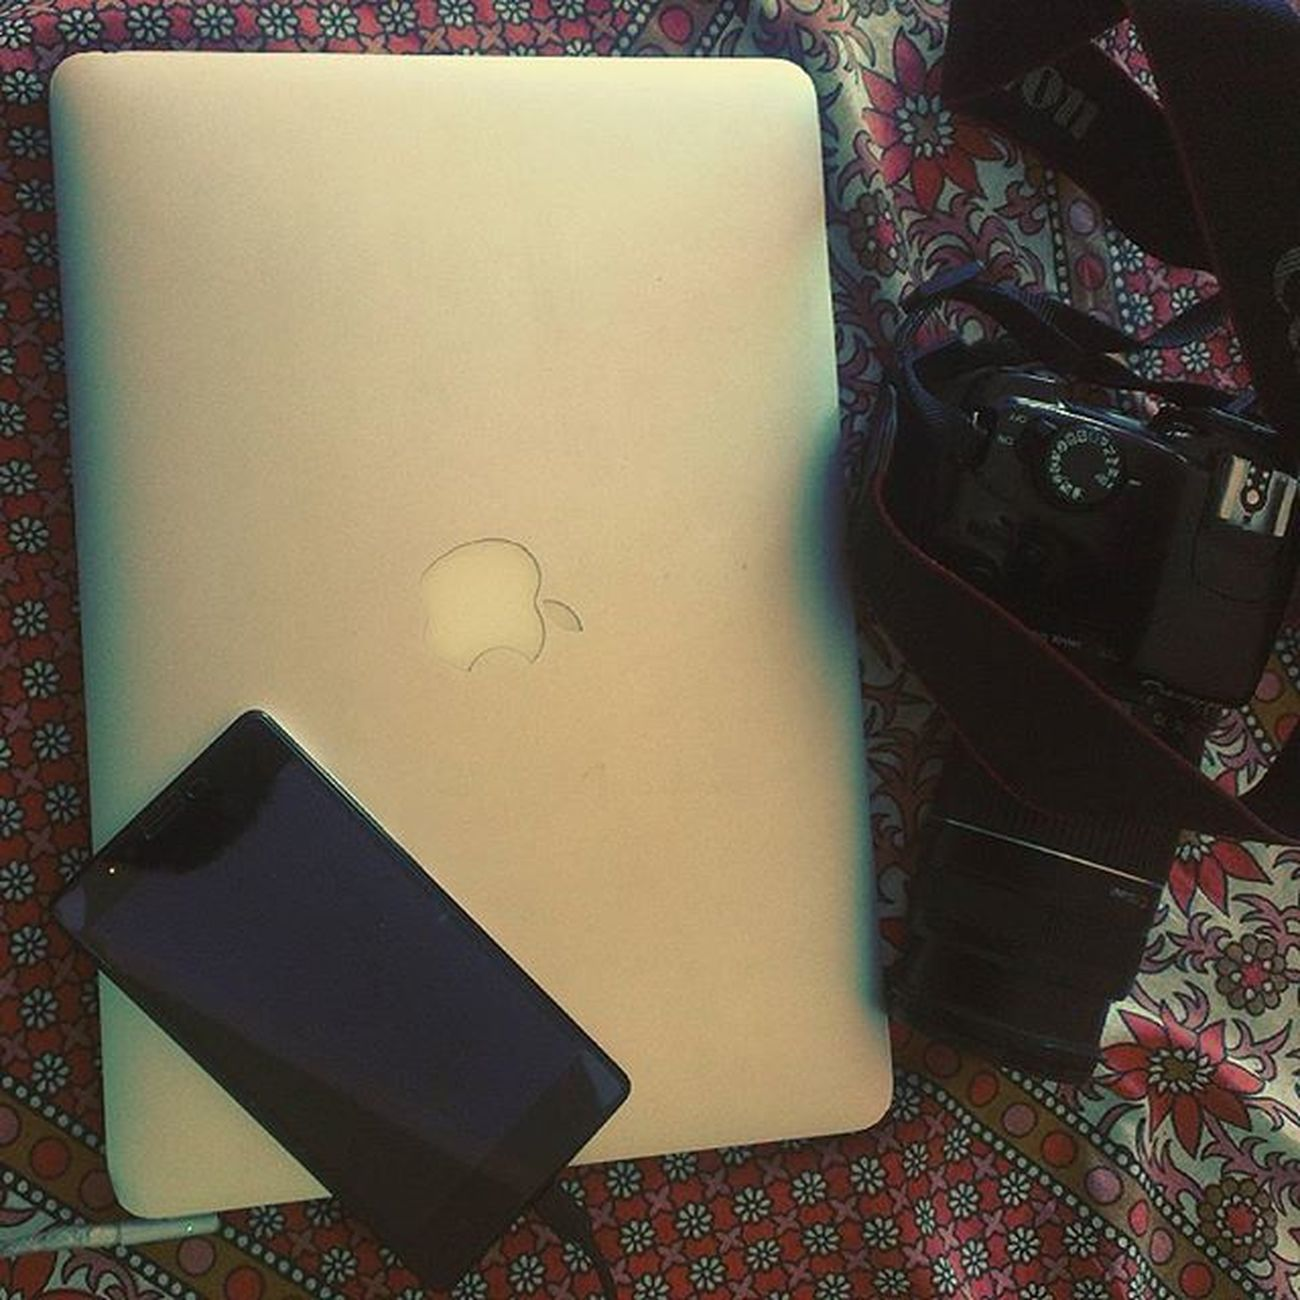 Macbook_air Canon Eos1100D Redmi Insta_click Insta_edit Insta_upload